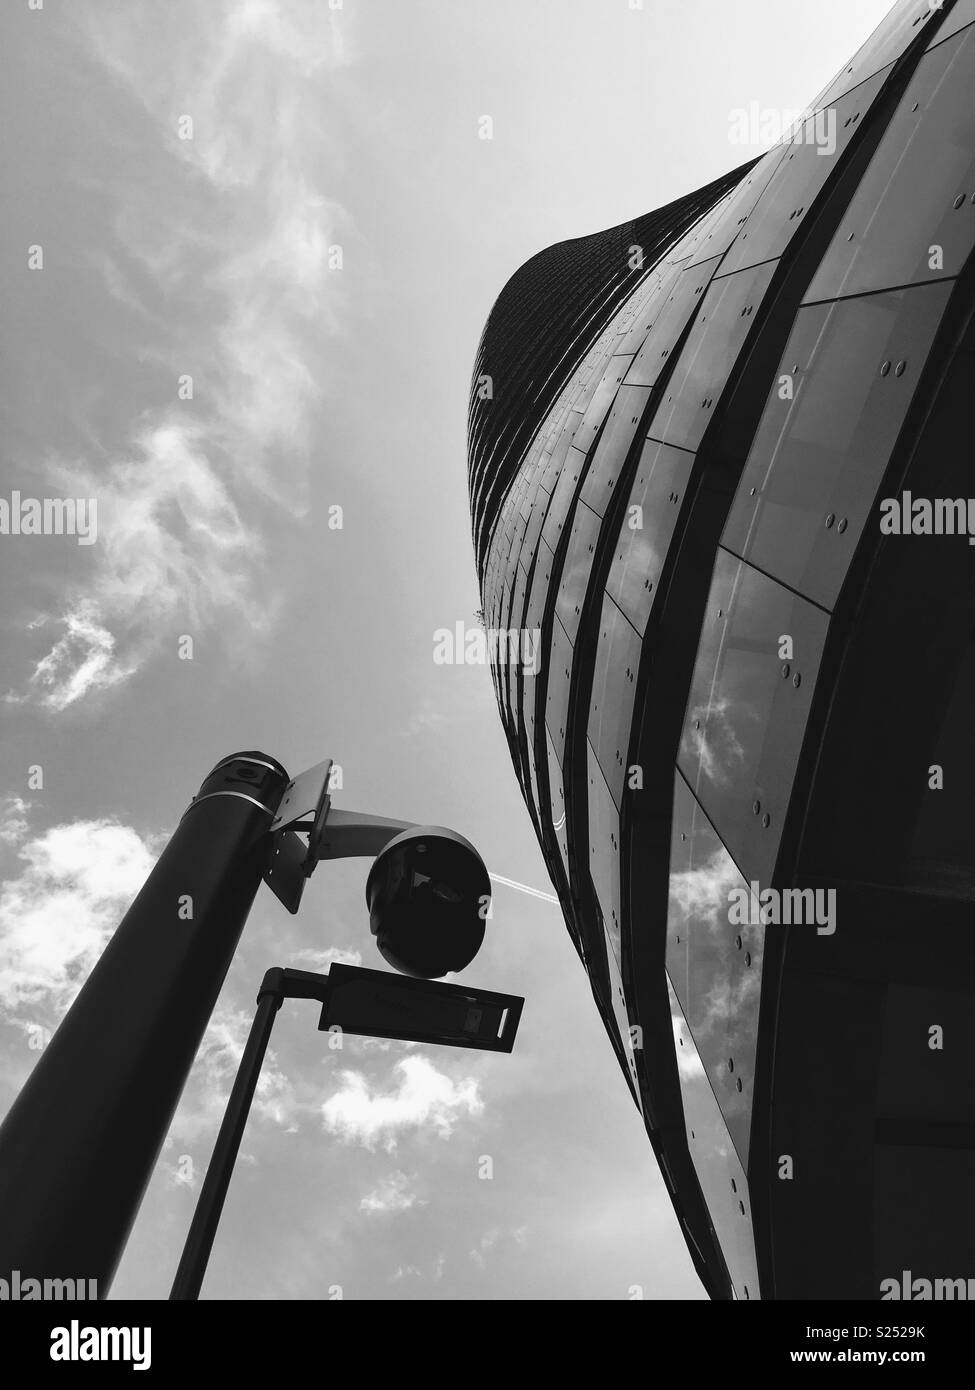 Skyrocketing Modern Design Building of Luxury Flats near Harbour Exchange Square in London E14 - Stock Image